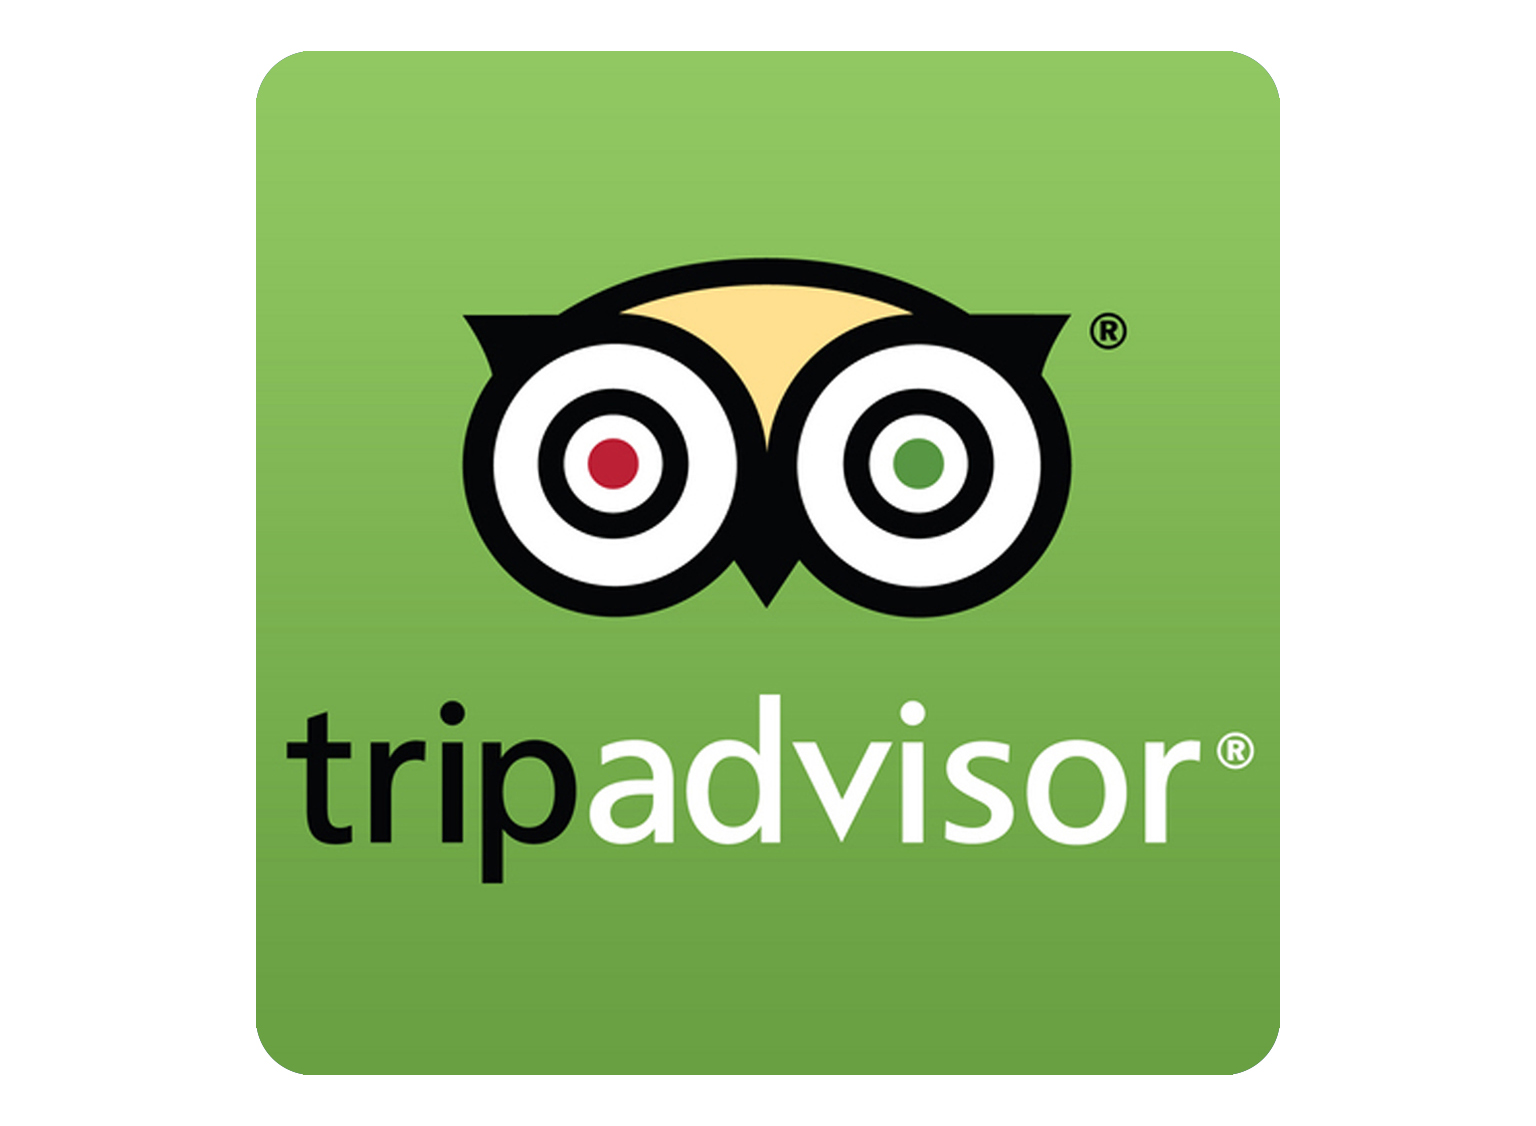 Tripadvisor Logo Png (78+ images in Collection) Page 2.